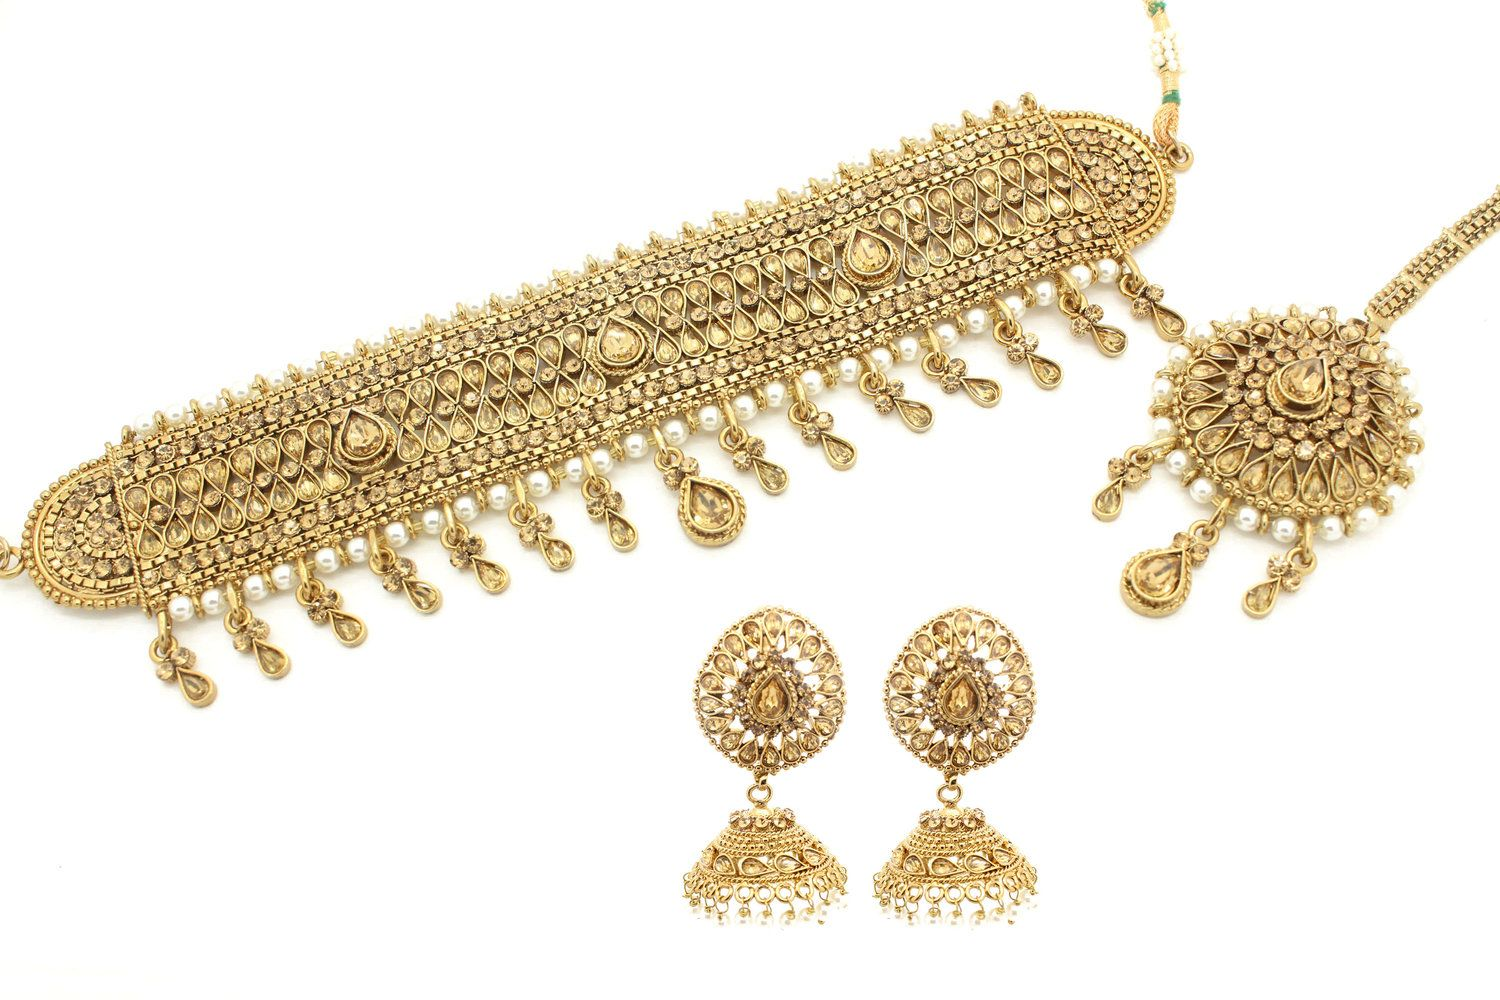 1dca0cc09 Antique Gold Kundan Polki Indian Asian Choker Necklace Jhumki Earring Jewelry  Jewellery Set